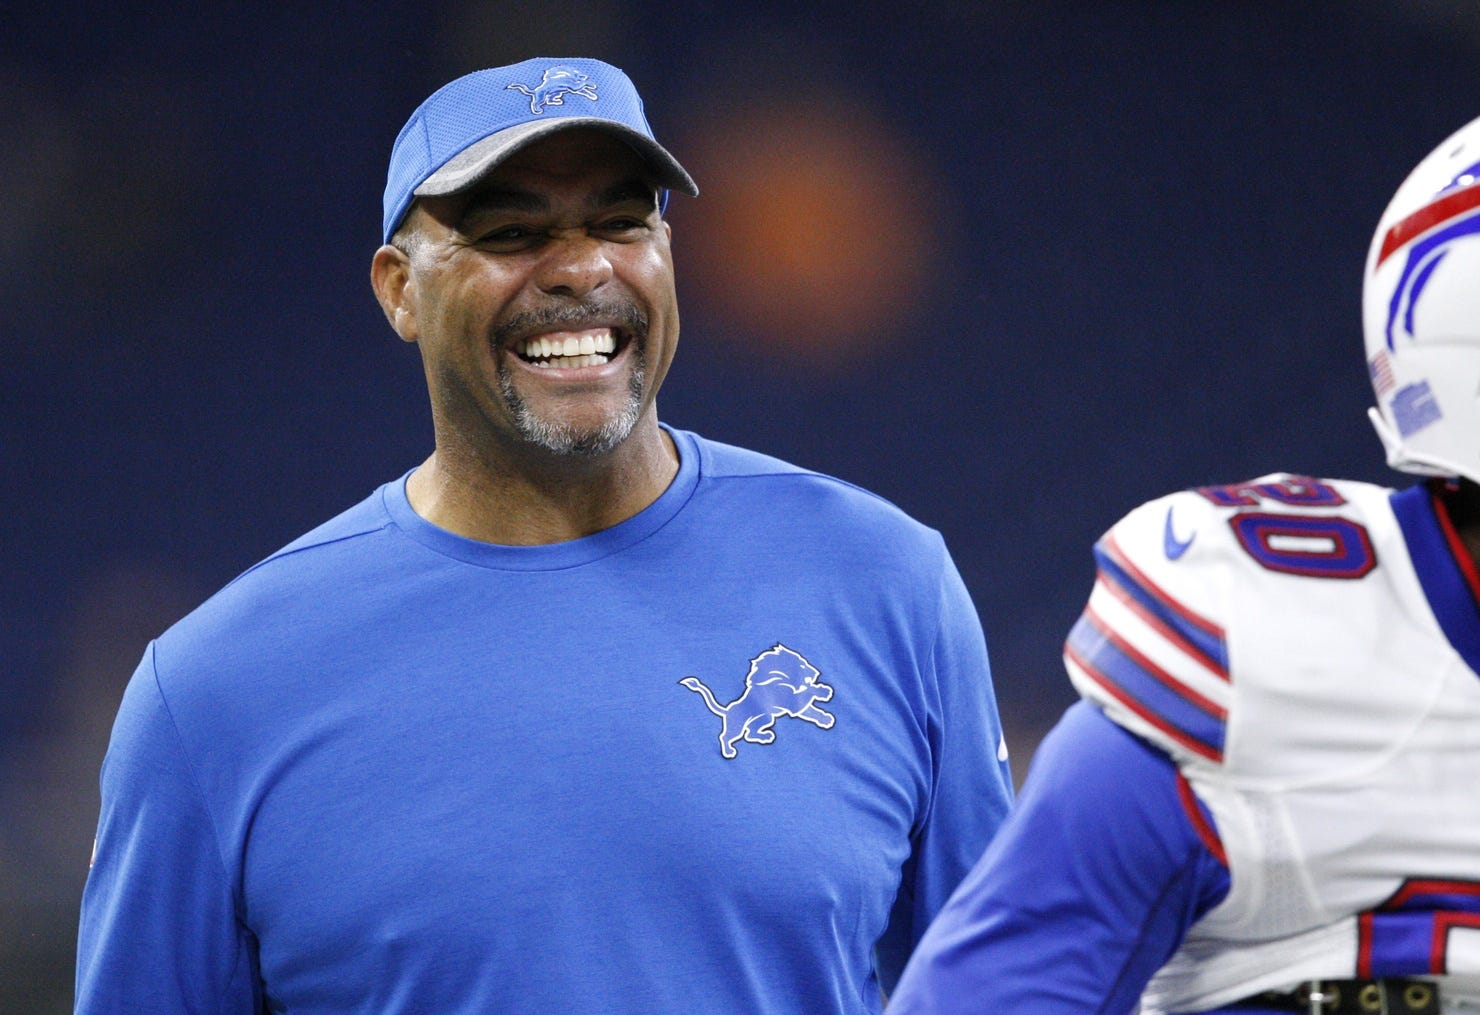 Lions defensive coordinator Teryl Austin smiles before